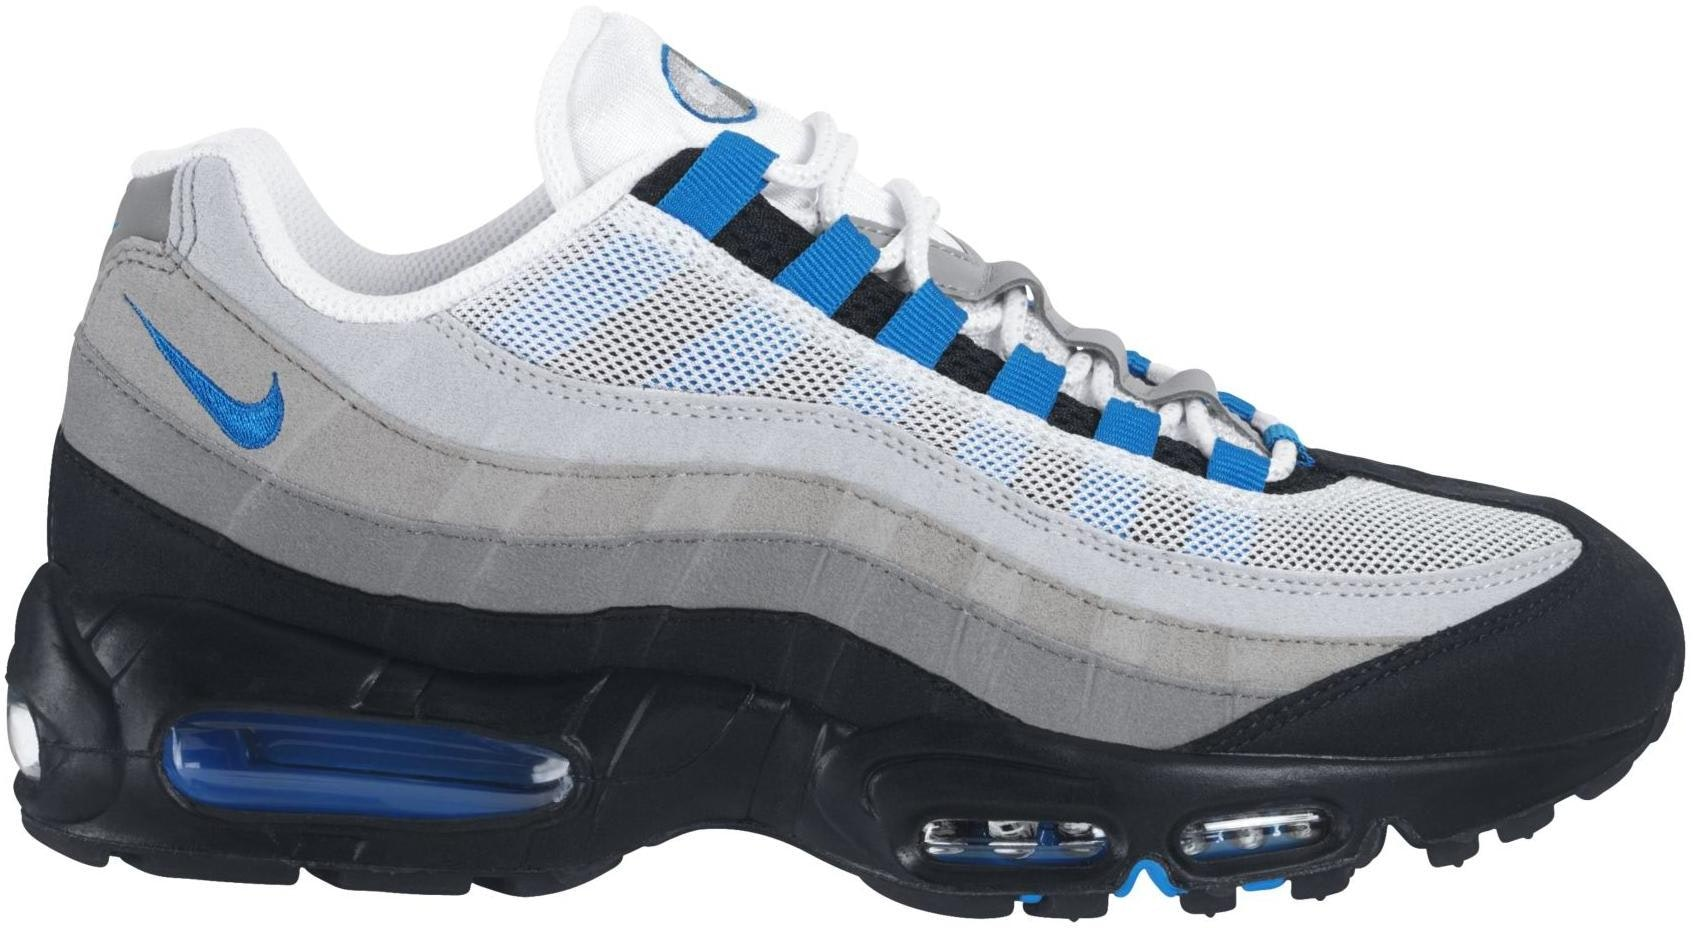 the latest 5a493 e4d60 new air max 95 releases 2010